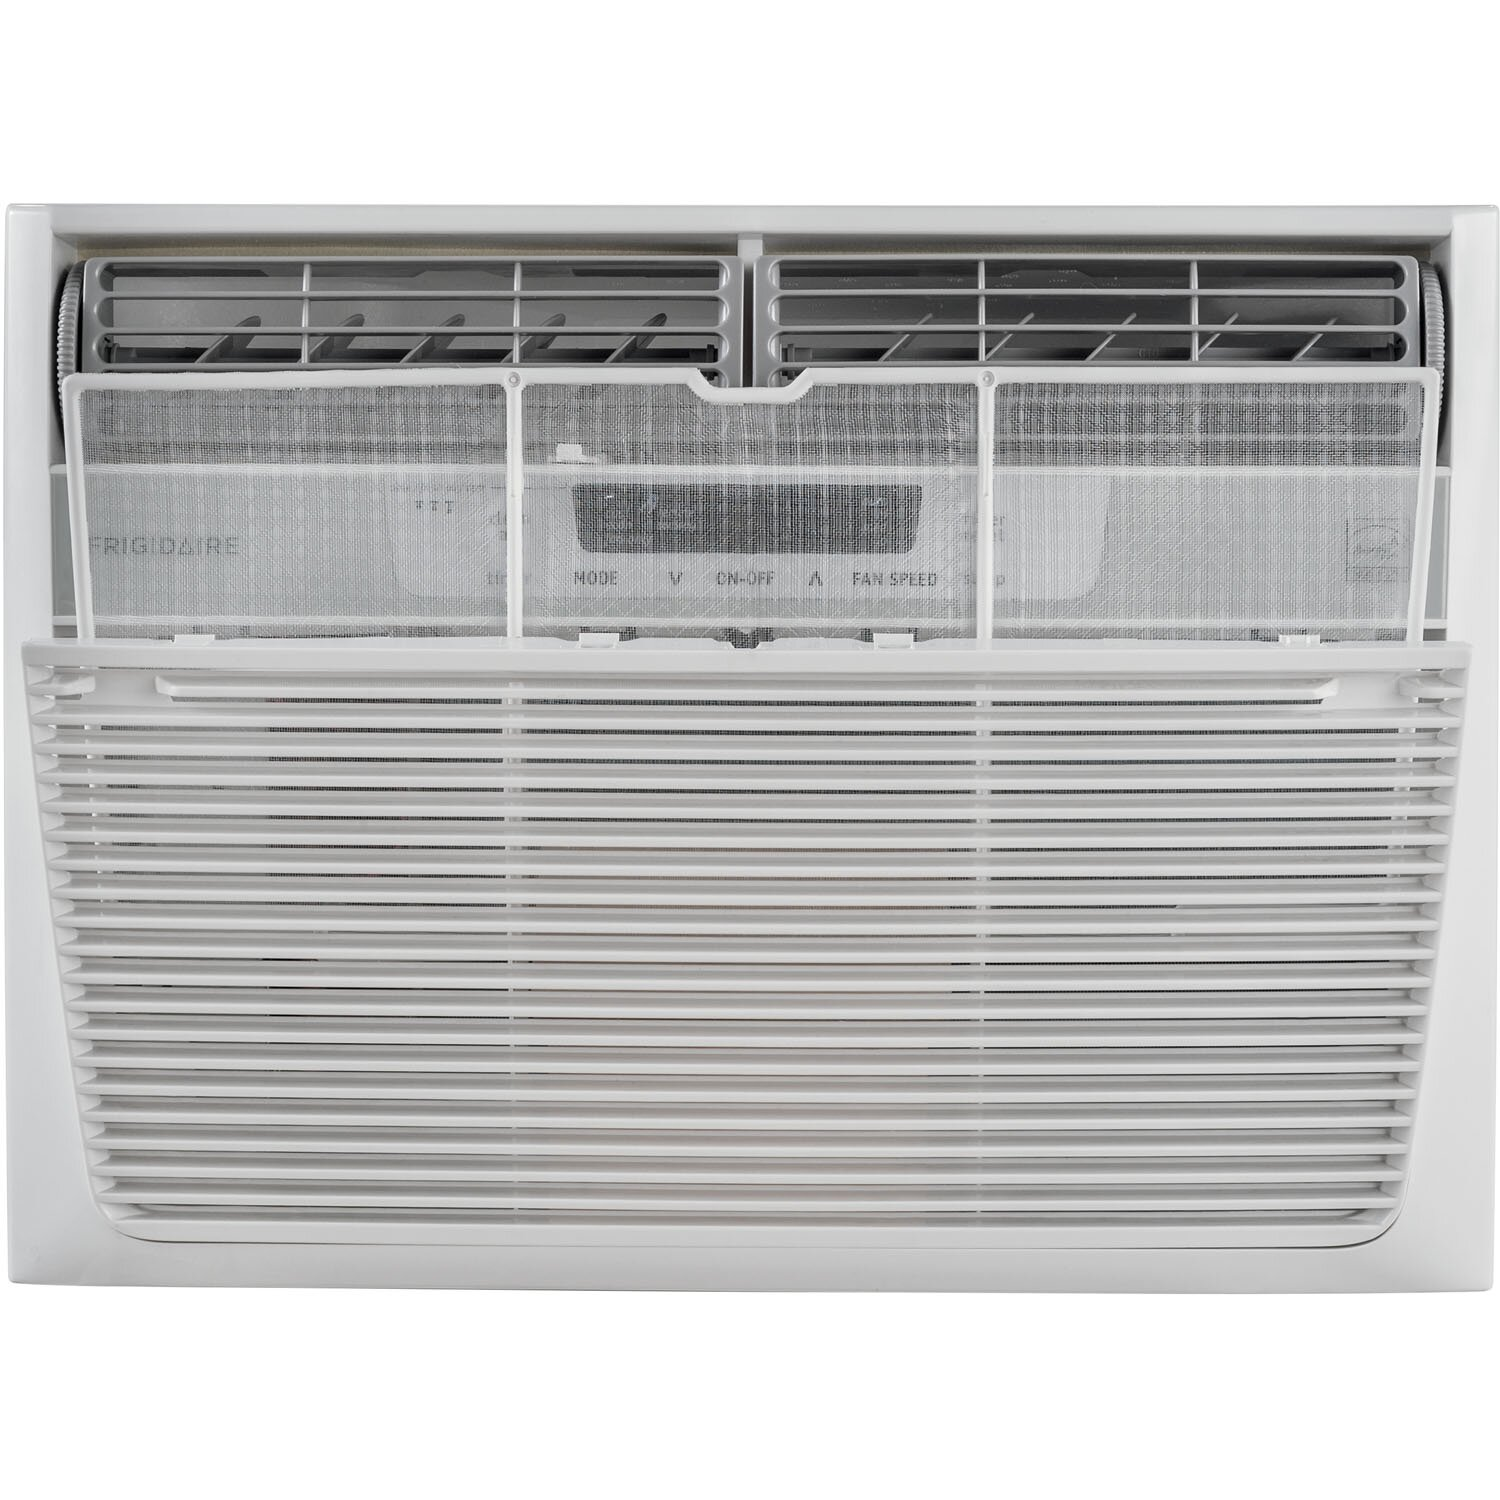 10 000 BTU Window Air Conditioner with Remote by Frigidaire #57534A